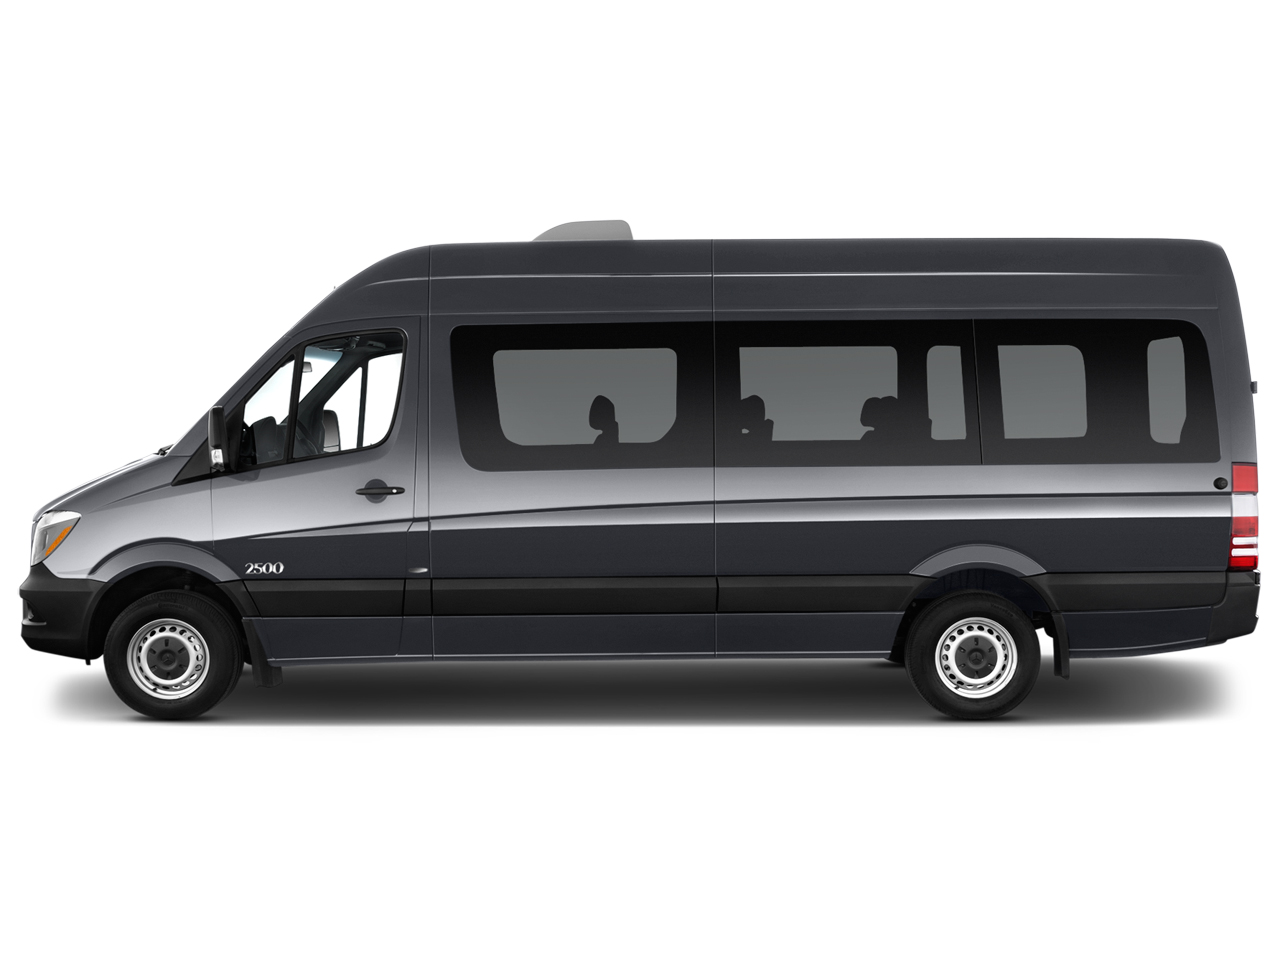 New and used mercedes benz sprinter passenger van prices for Mercedes benz sprinter luxury van price